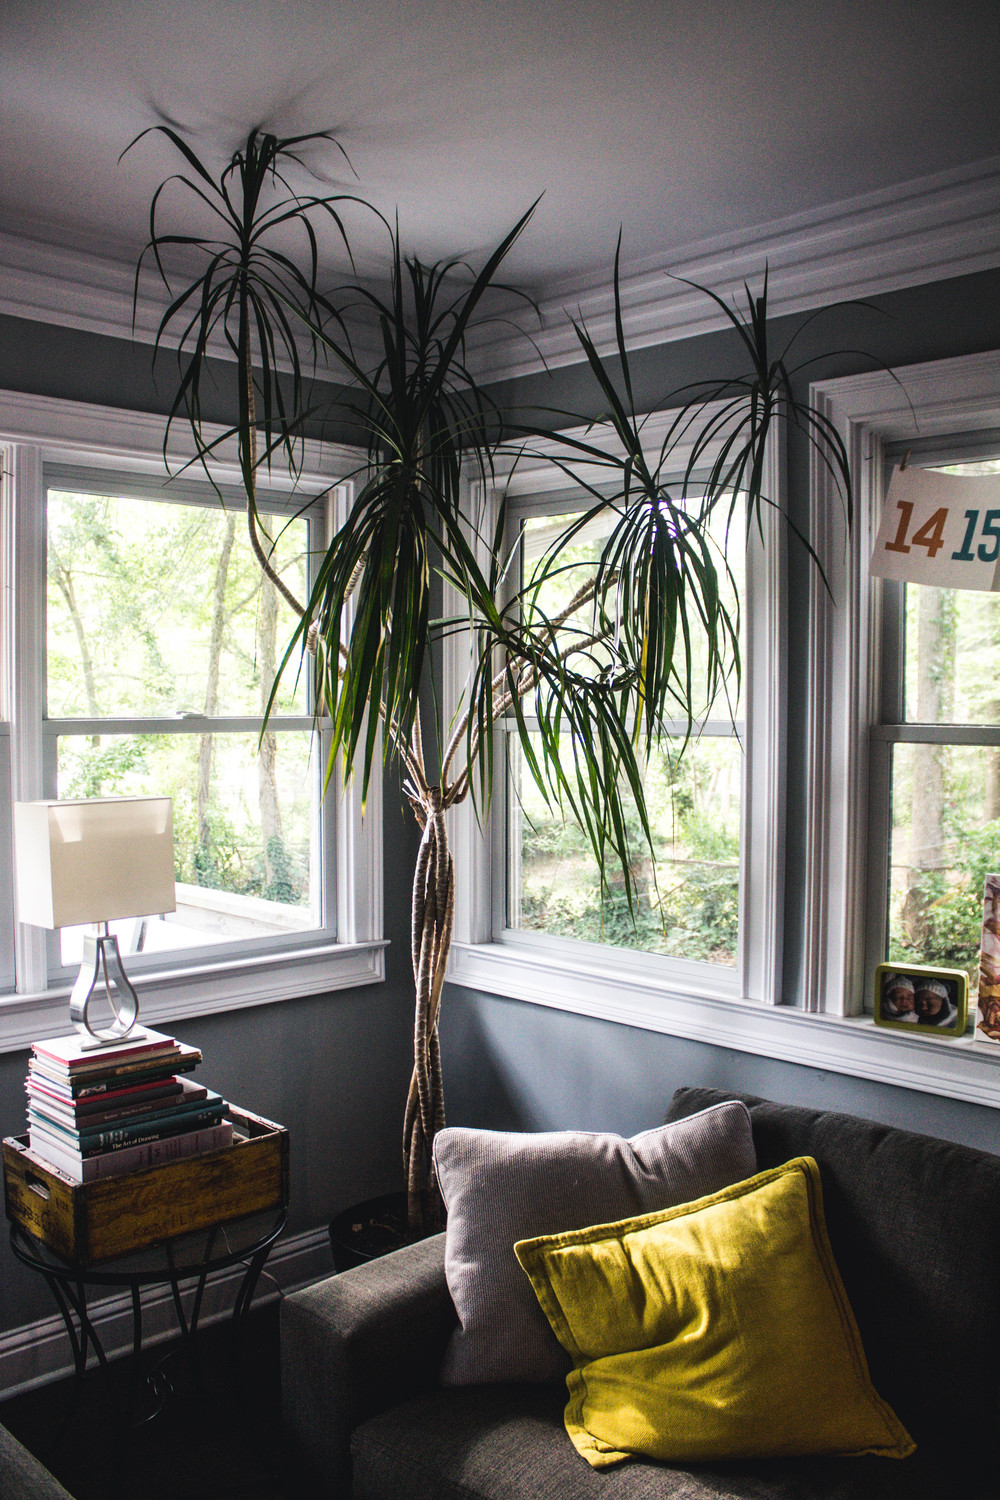 The Taleros also play with scale, introducing this large potted plant that immediately draws the eye to the large windows and cozy den.